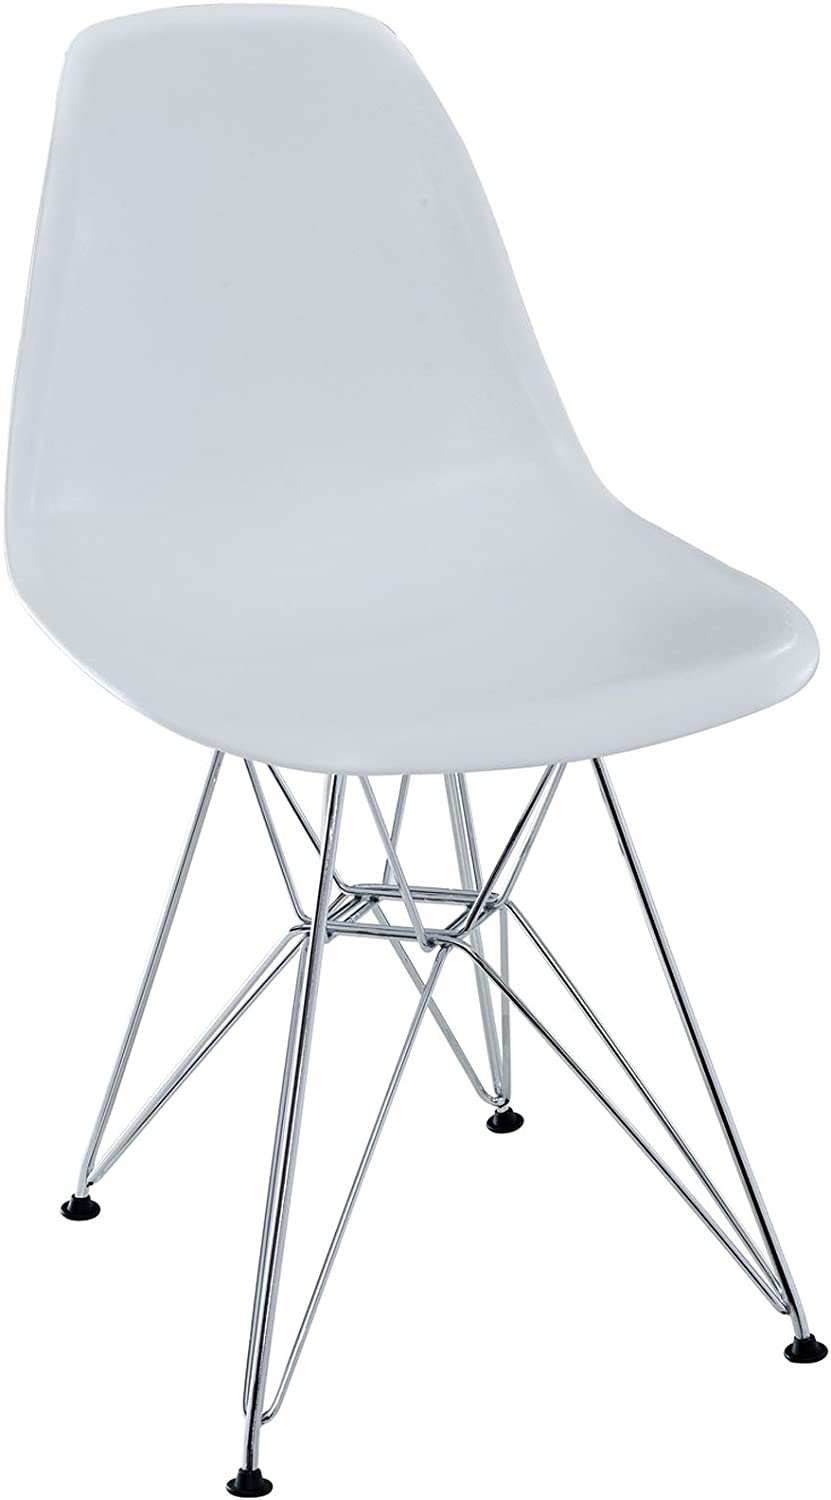 Modway Plastic Side Chair in White with Wire Base